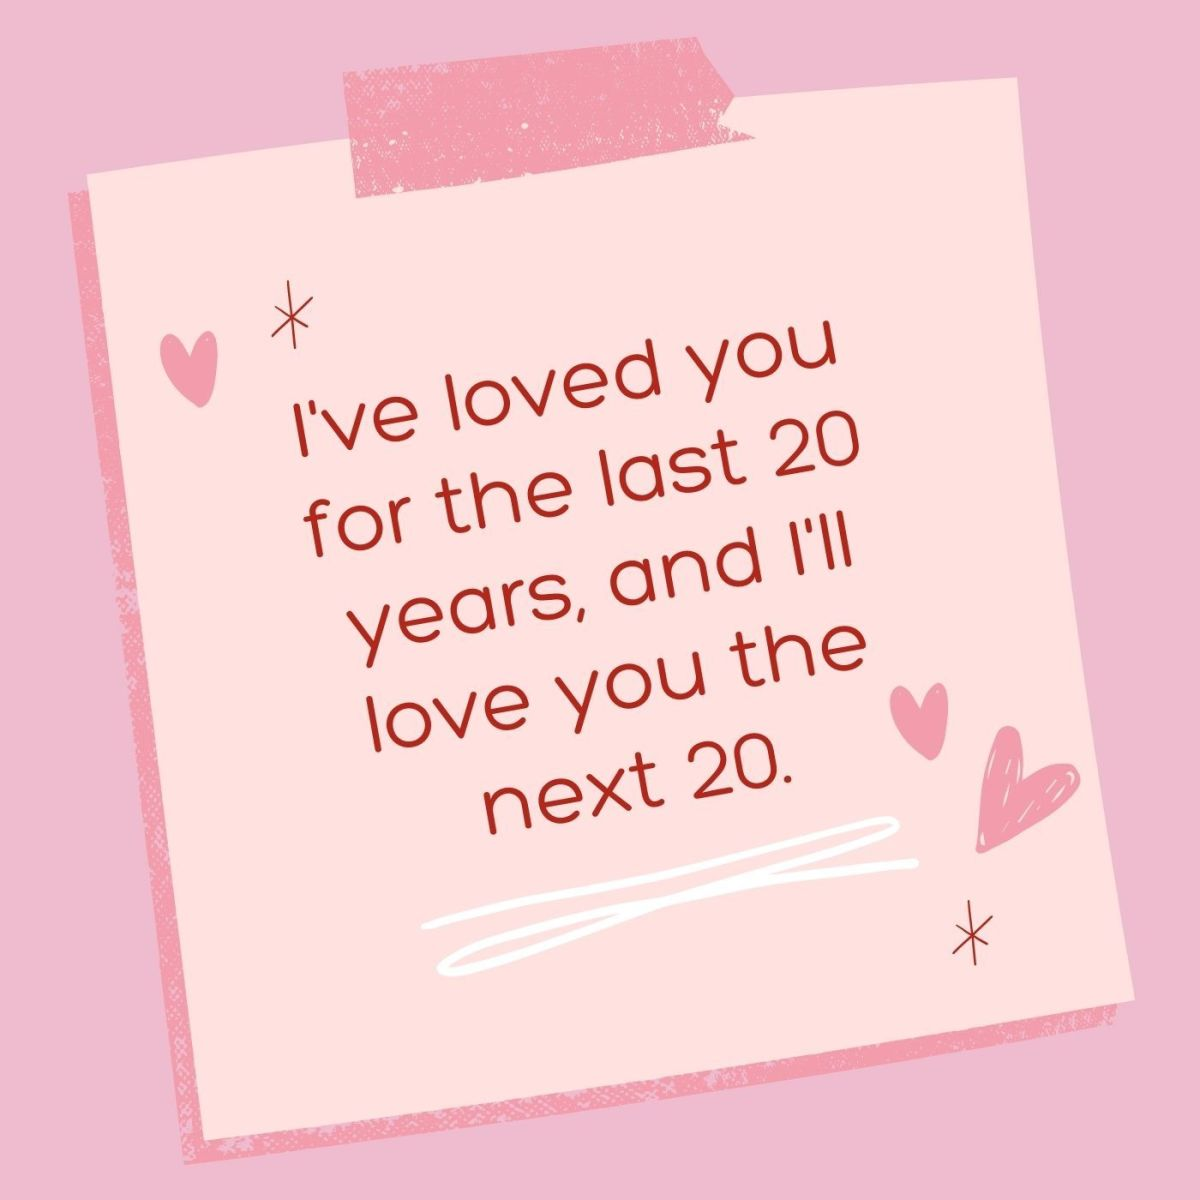 20 more years, please!